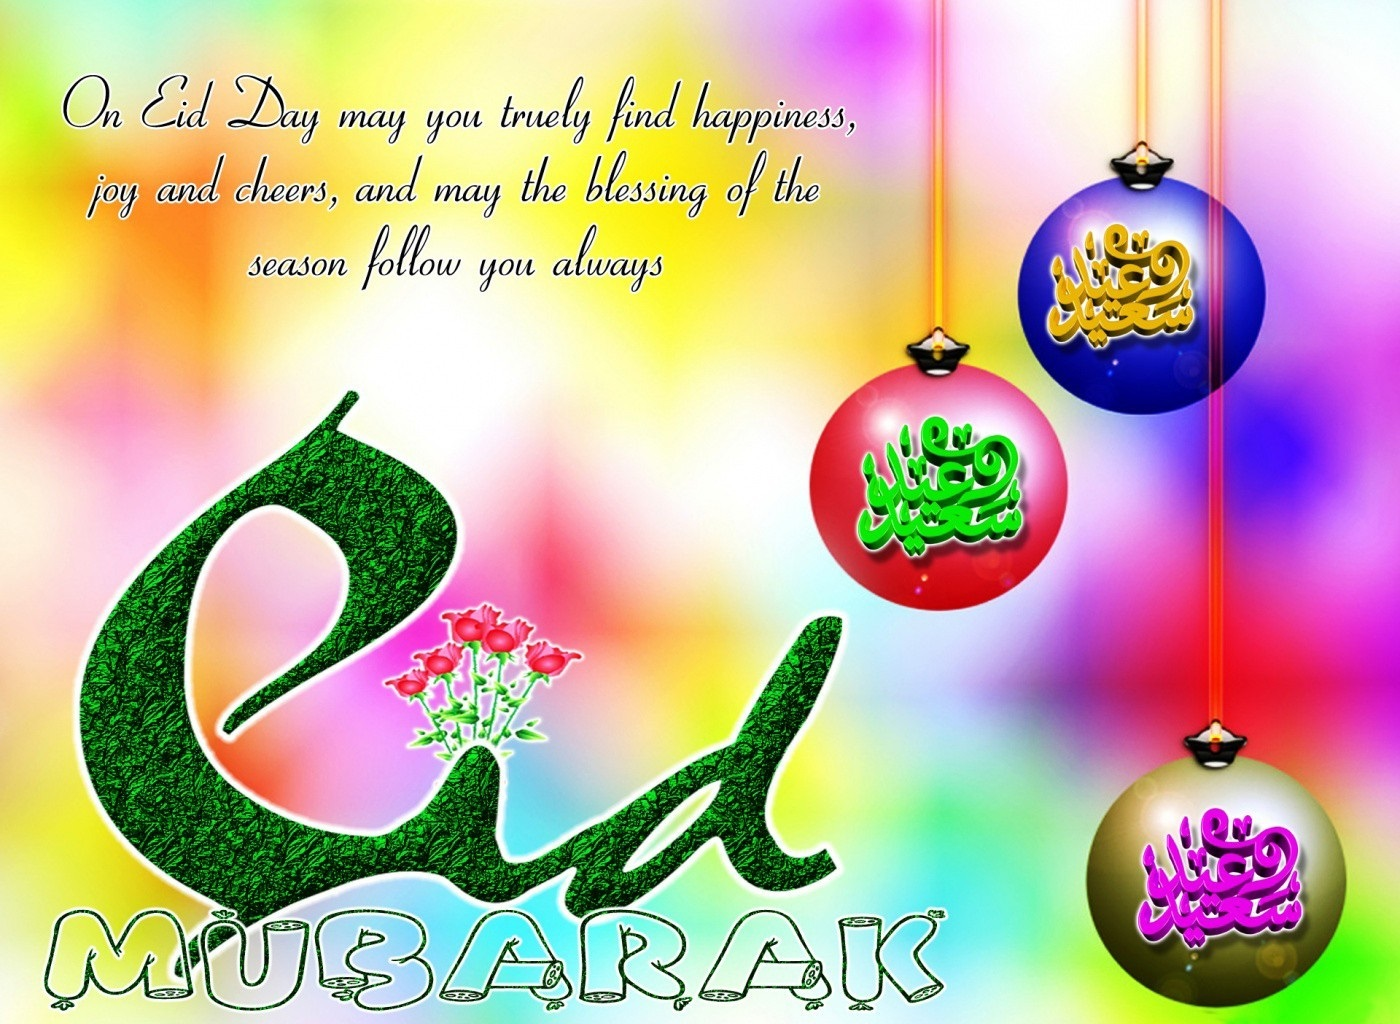 Happy Eid Mubarak Wishes Wallpaper